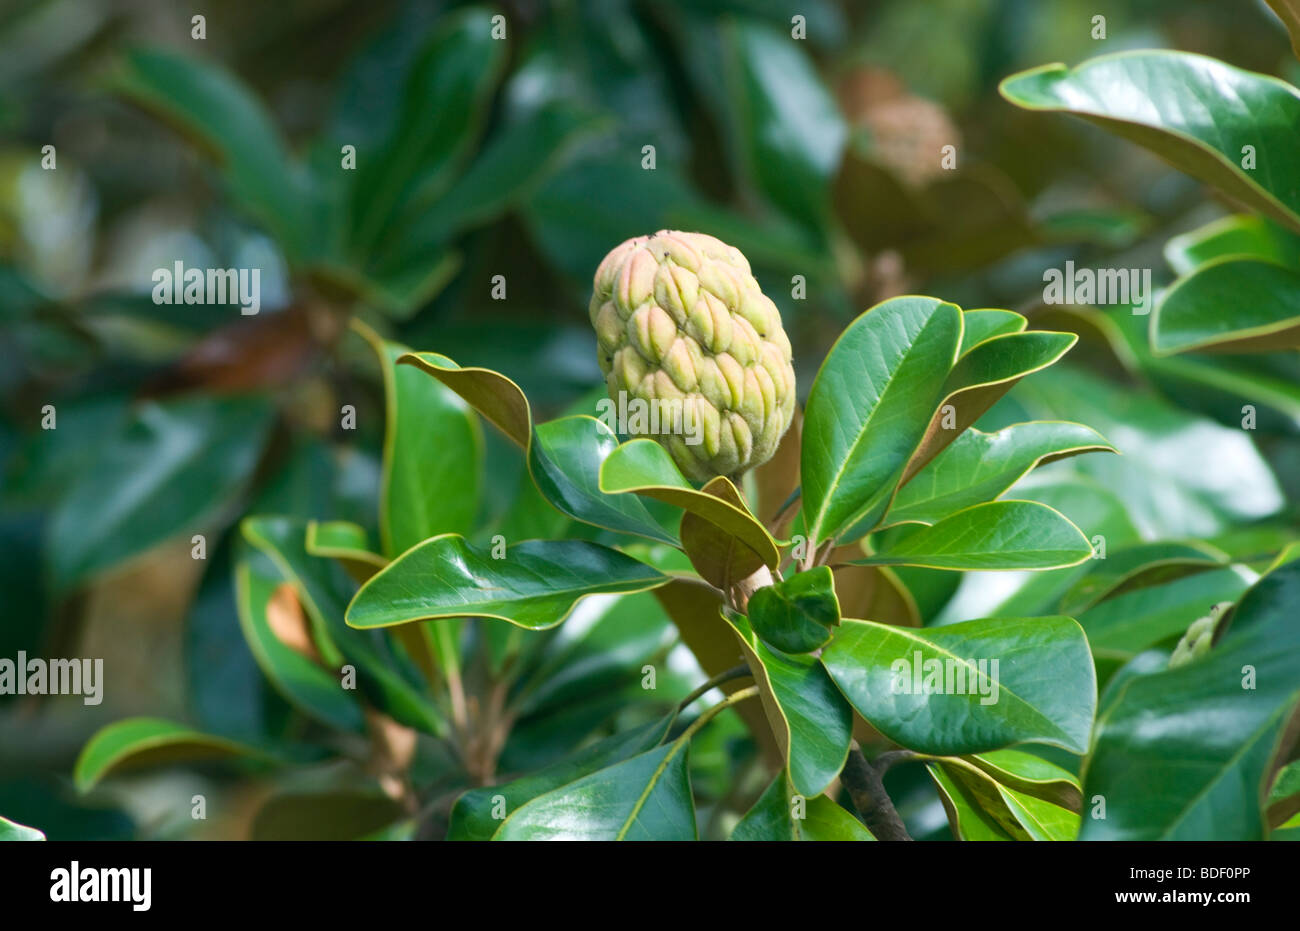 Magnolia Tree Pod Stock Photo 25530814 Alamy